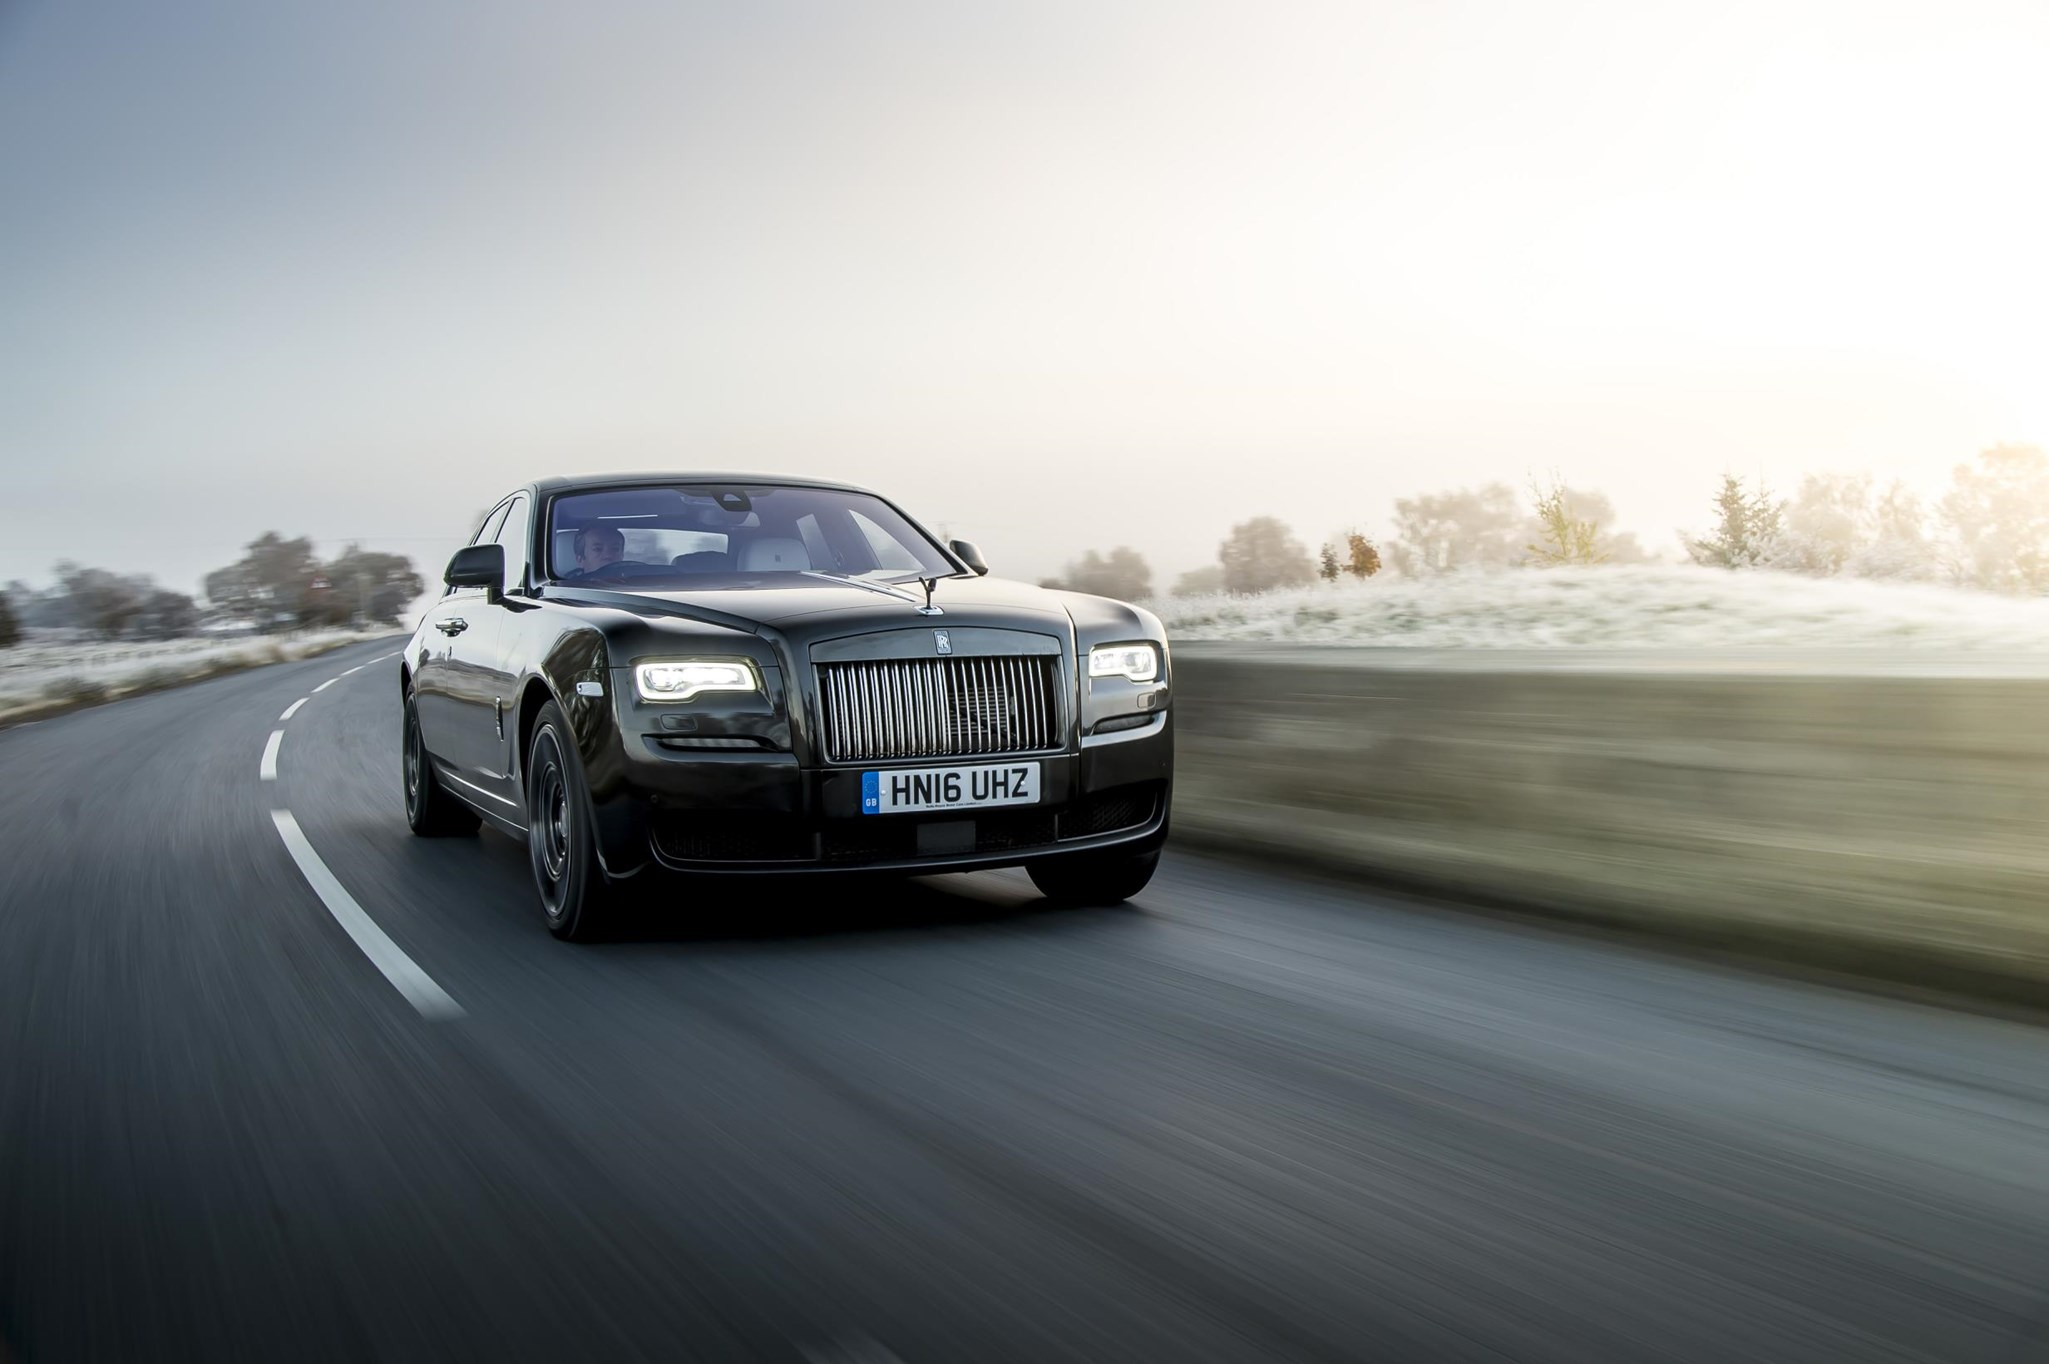 Rolls-Royce Announces Second Highest Sales Record In Its 113-Year History